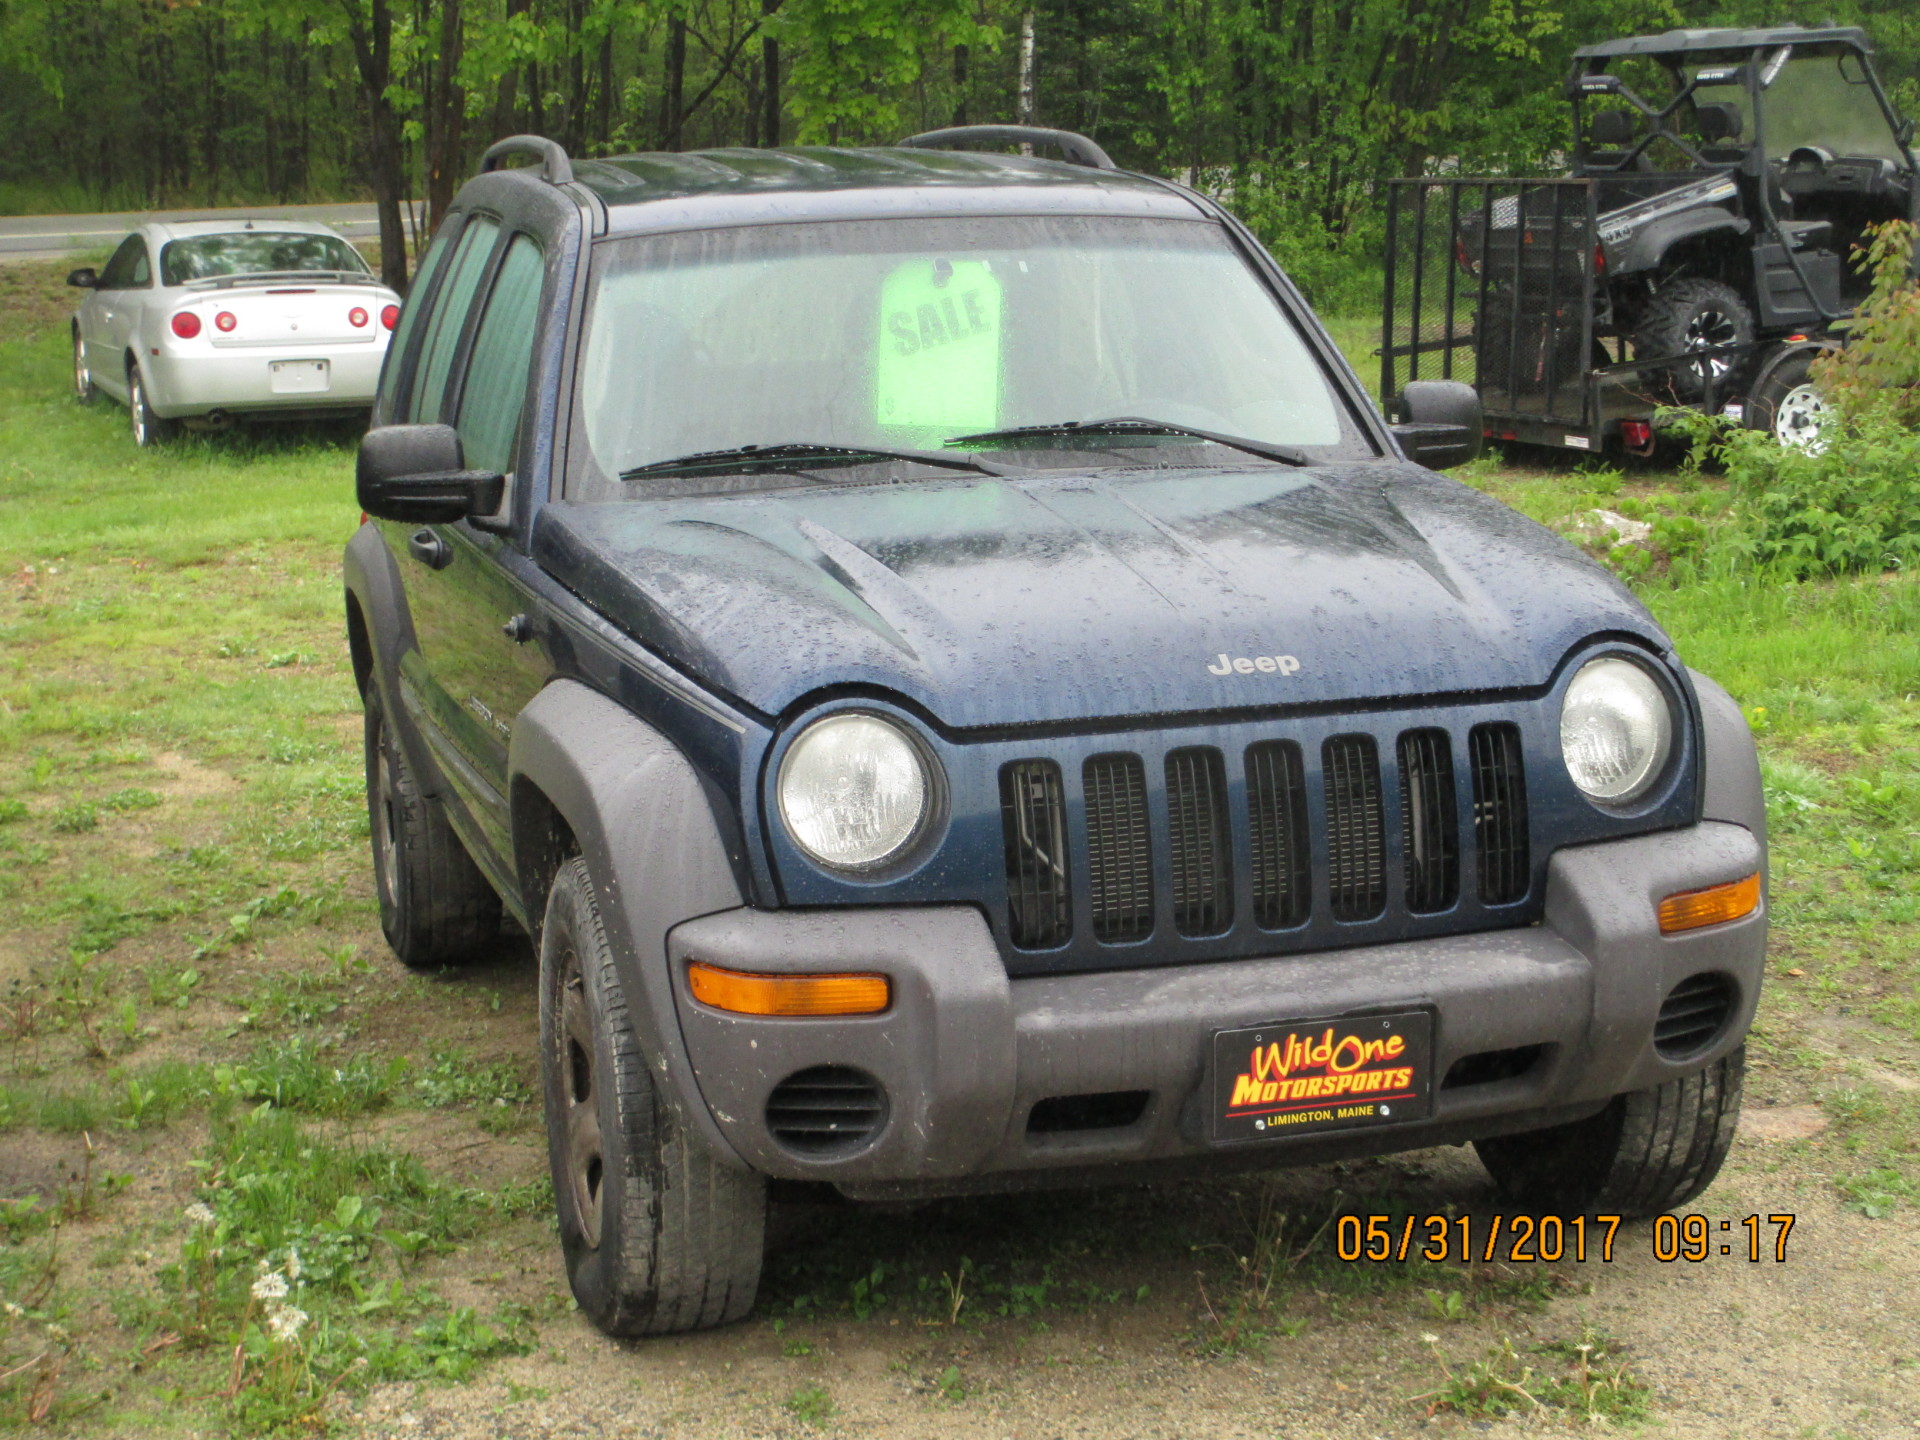 2003 Jeep Liberty Sport - Blue